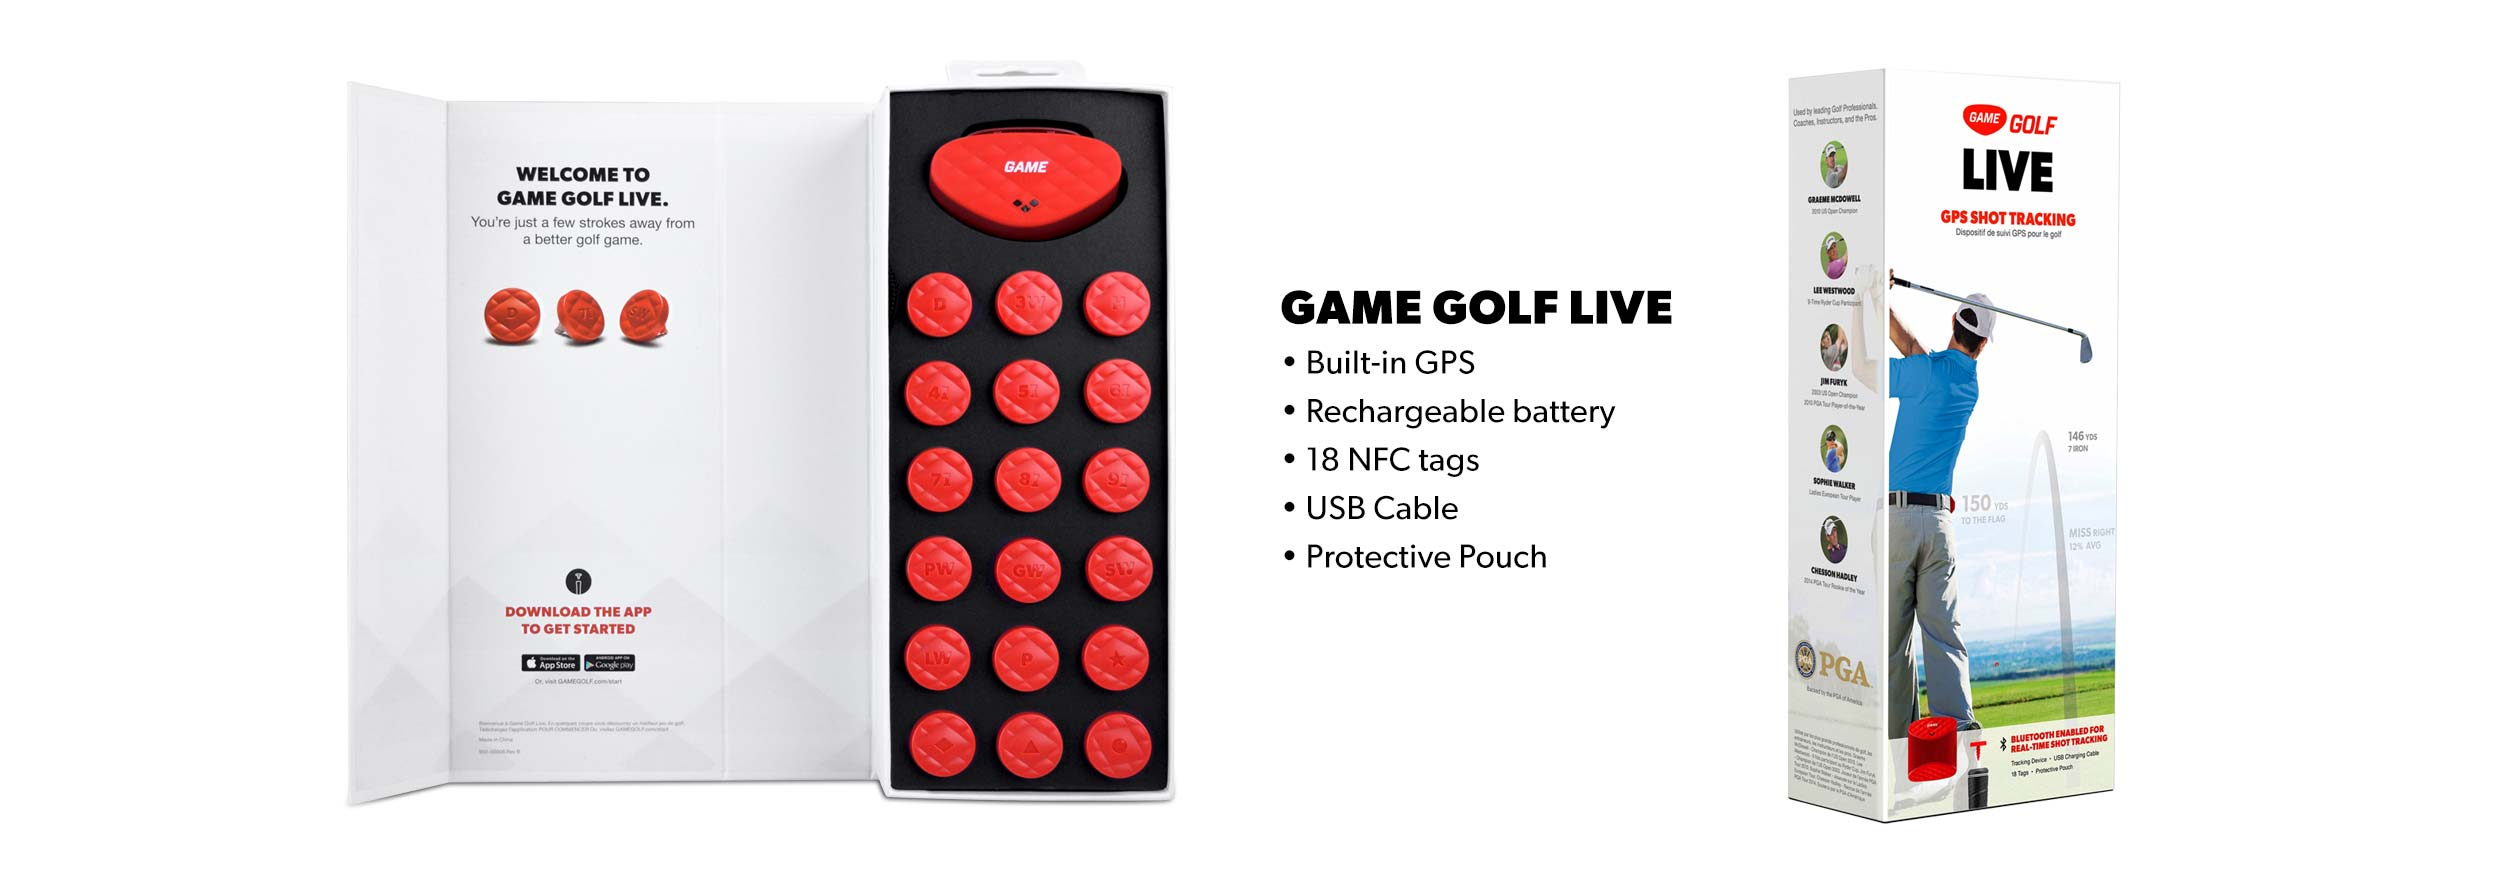 Game Golf LIVE Contents